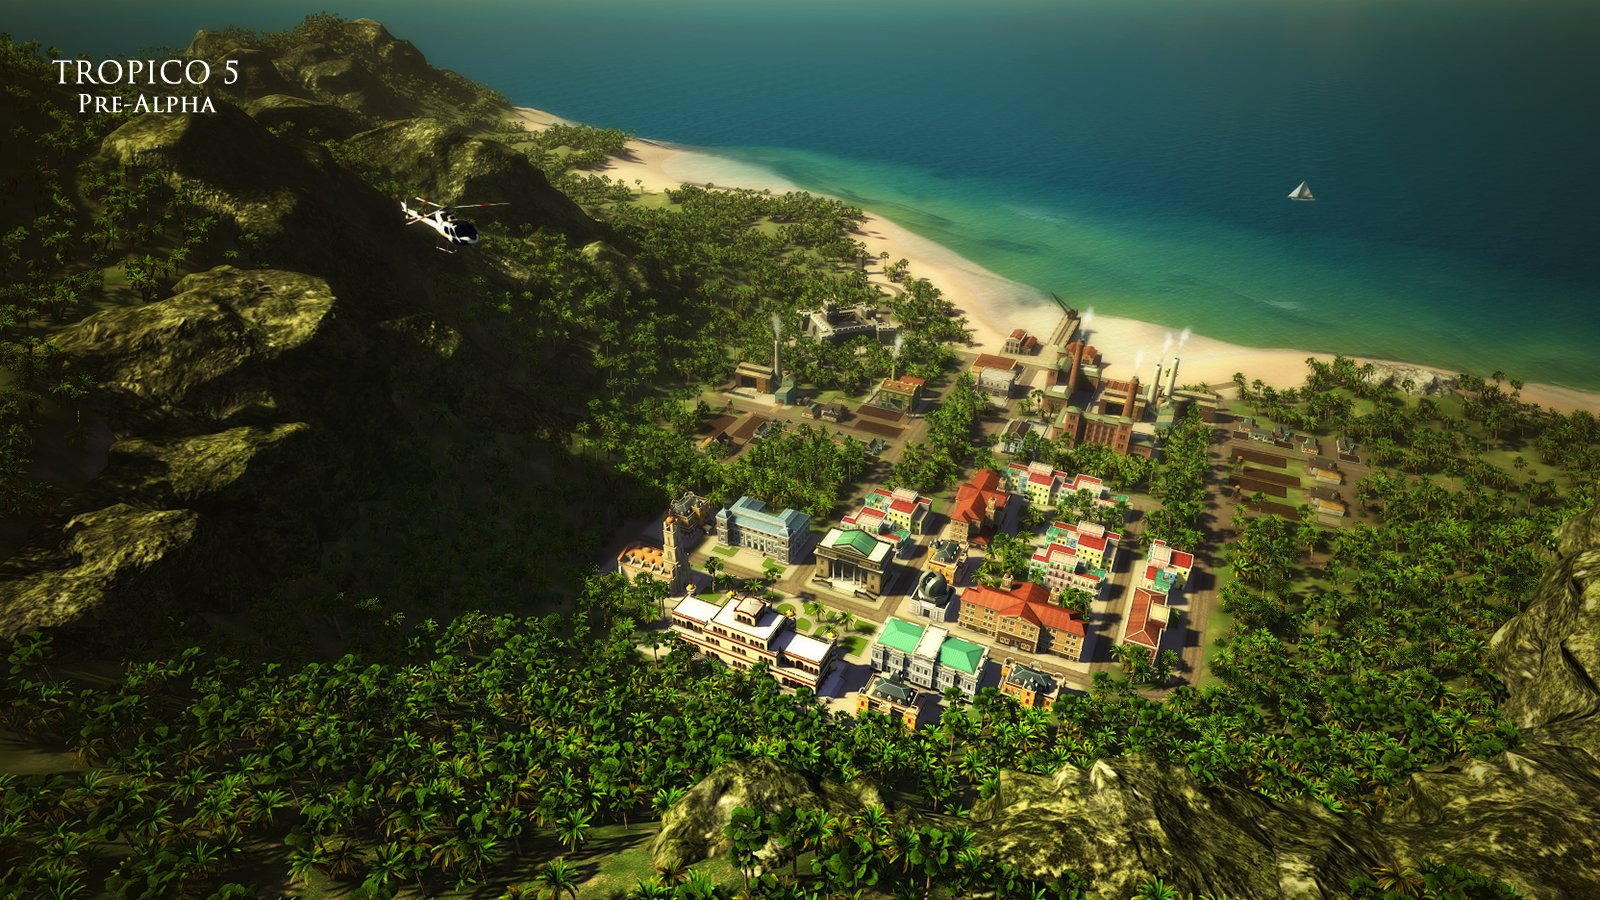 file_7803_tropico-5-xbox-360-pc-sim-game-screenshots-2